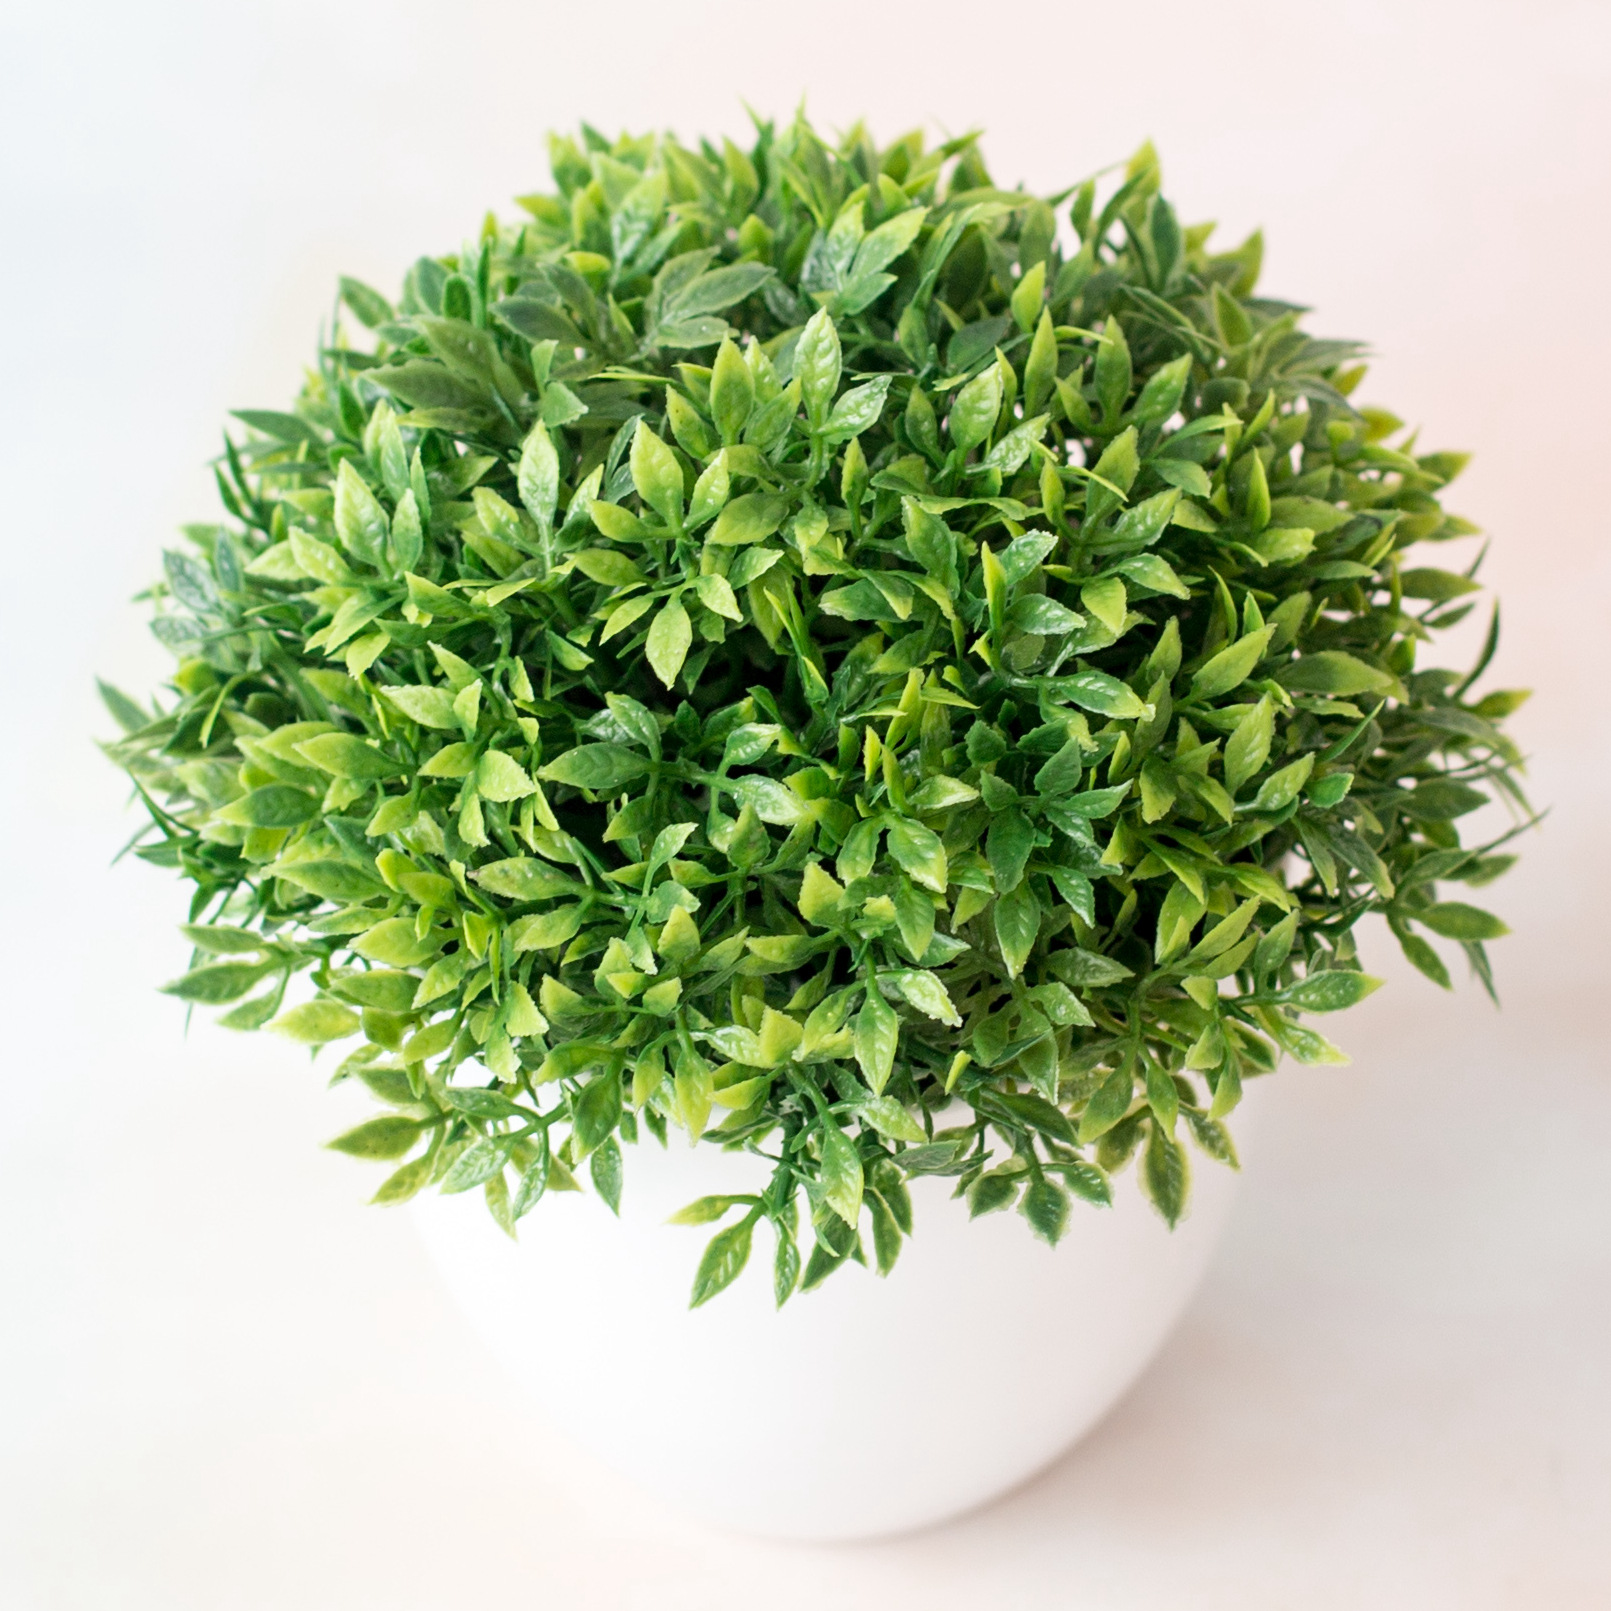 1pc Artificial Plants Green Bonsai Small Tree Pot Plants Fake Flower Potted Ornaments for Home Decoration Craft Plant Decorative 3